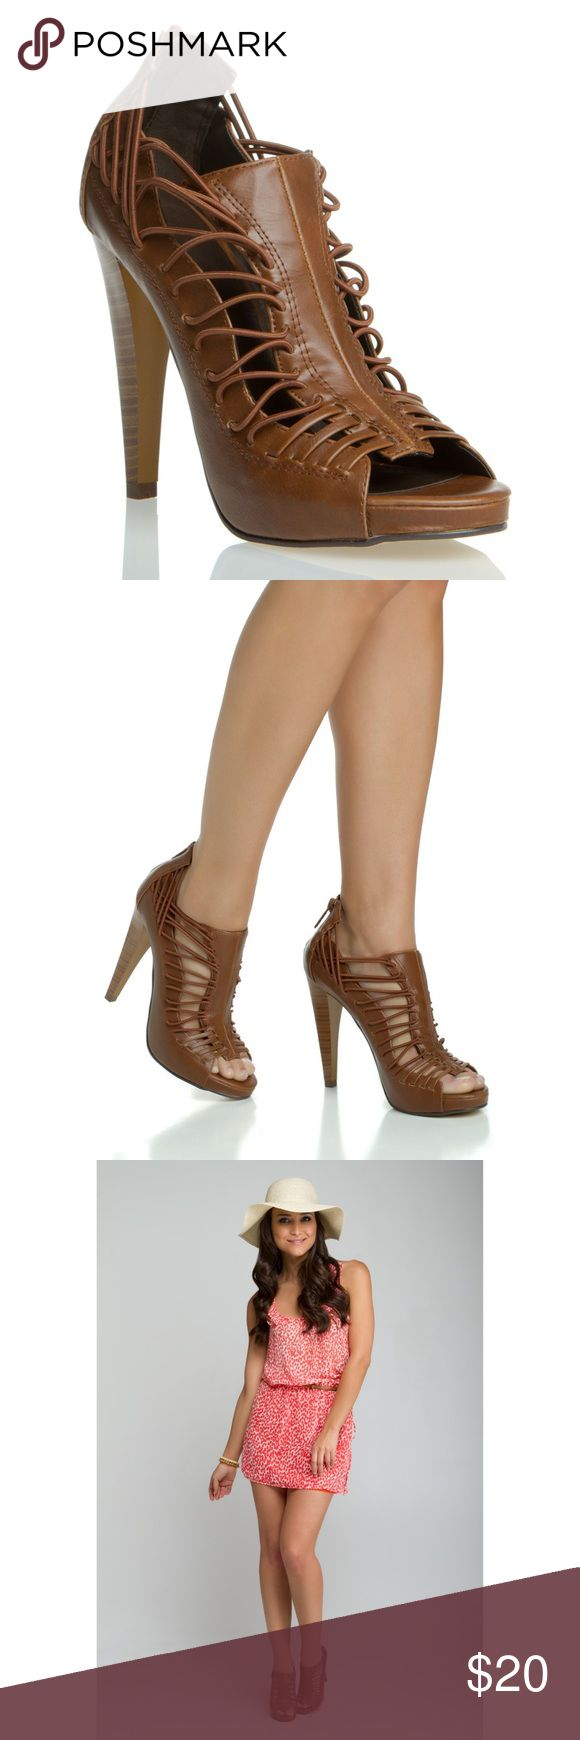 """Brown Strappy Heels So easy to dress up or down an outfit with these heels! The straps are stretchy cords and the panels show hints of skin! Only worn once or twice with minimal signs of wear. Zip up closure on back and heel height measures 5"""" Shoes Heels"""